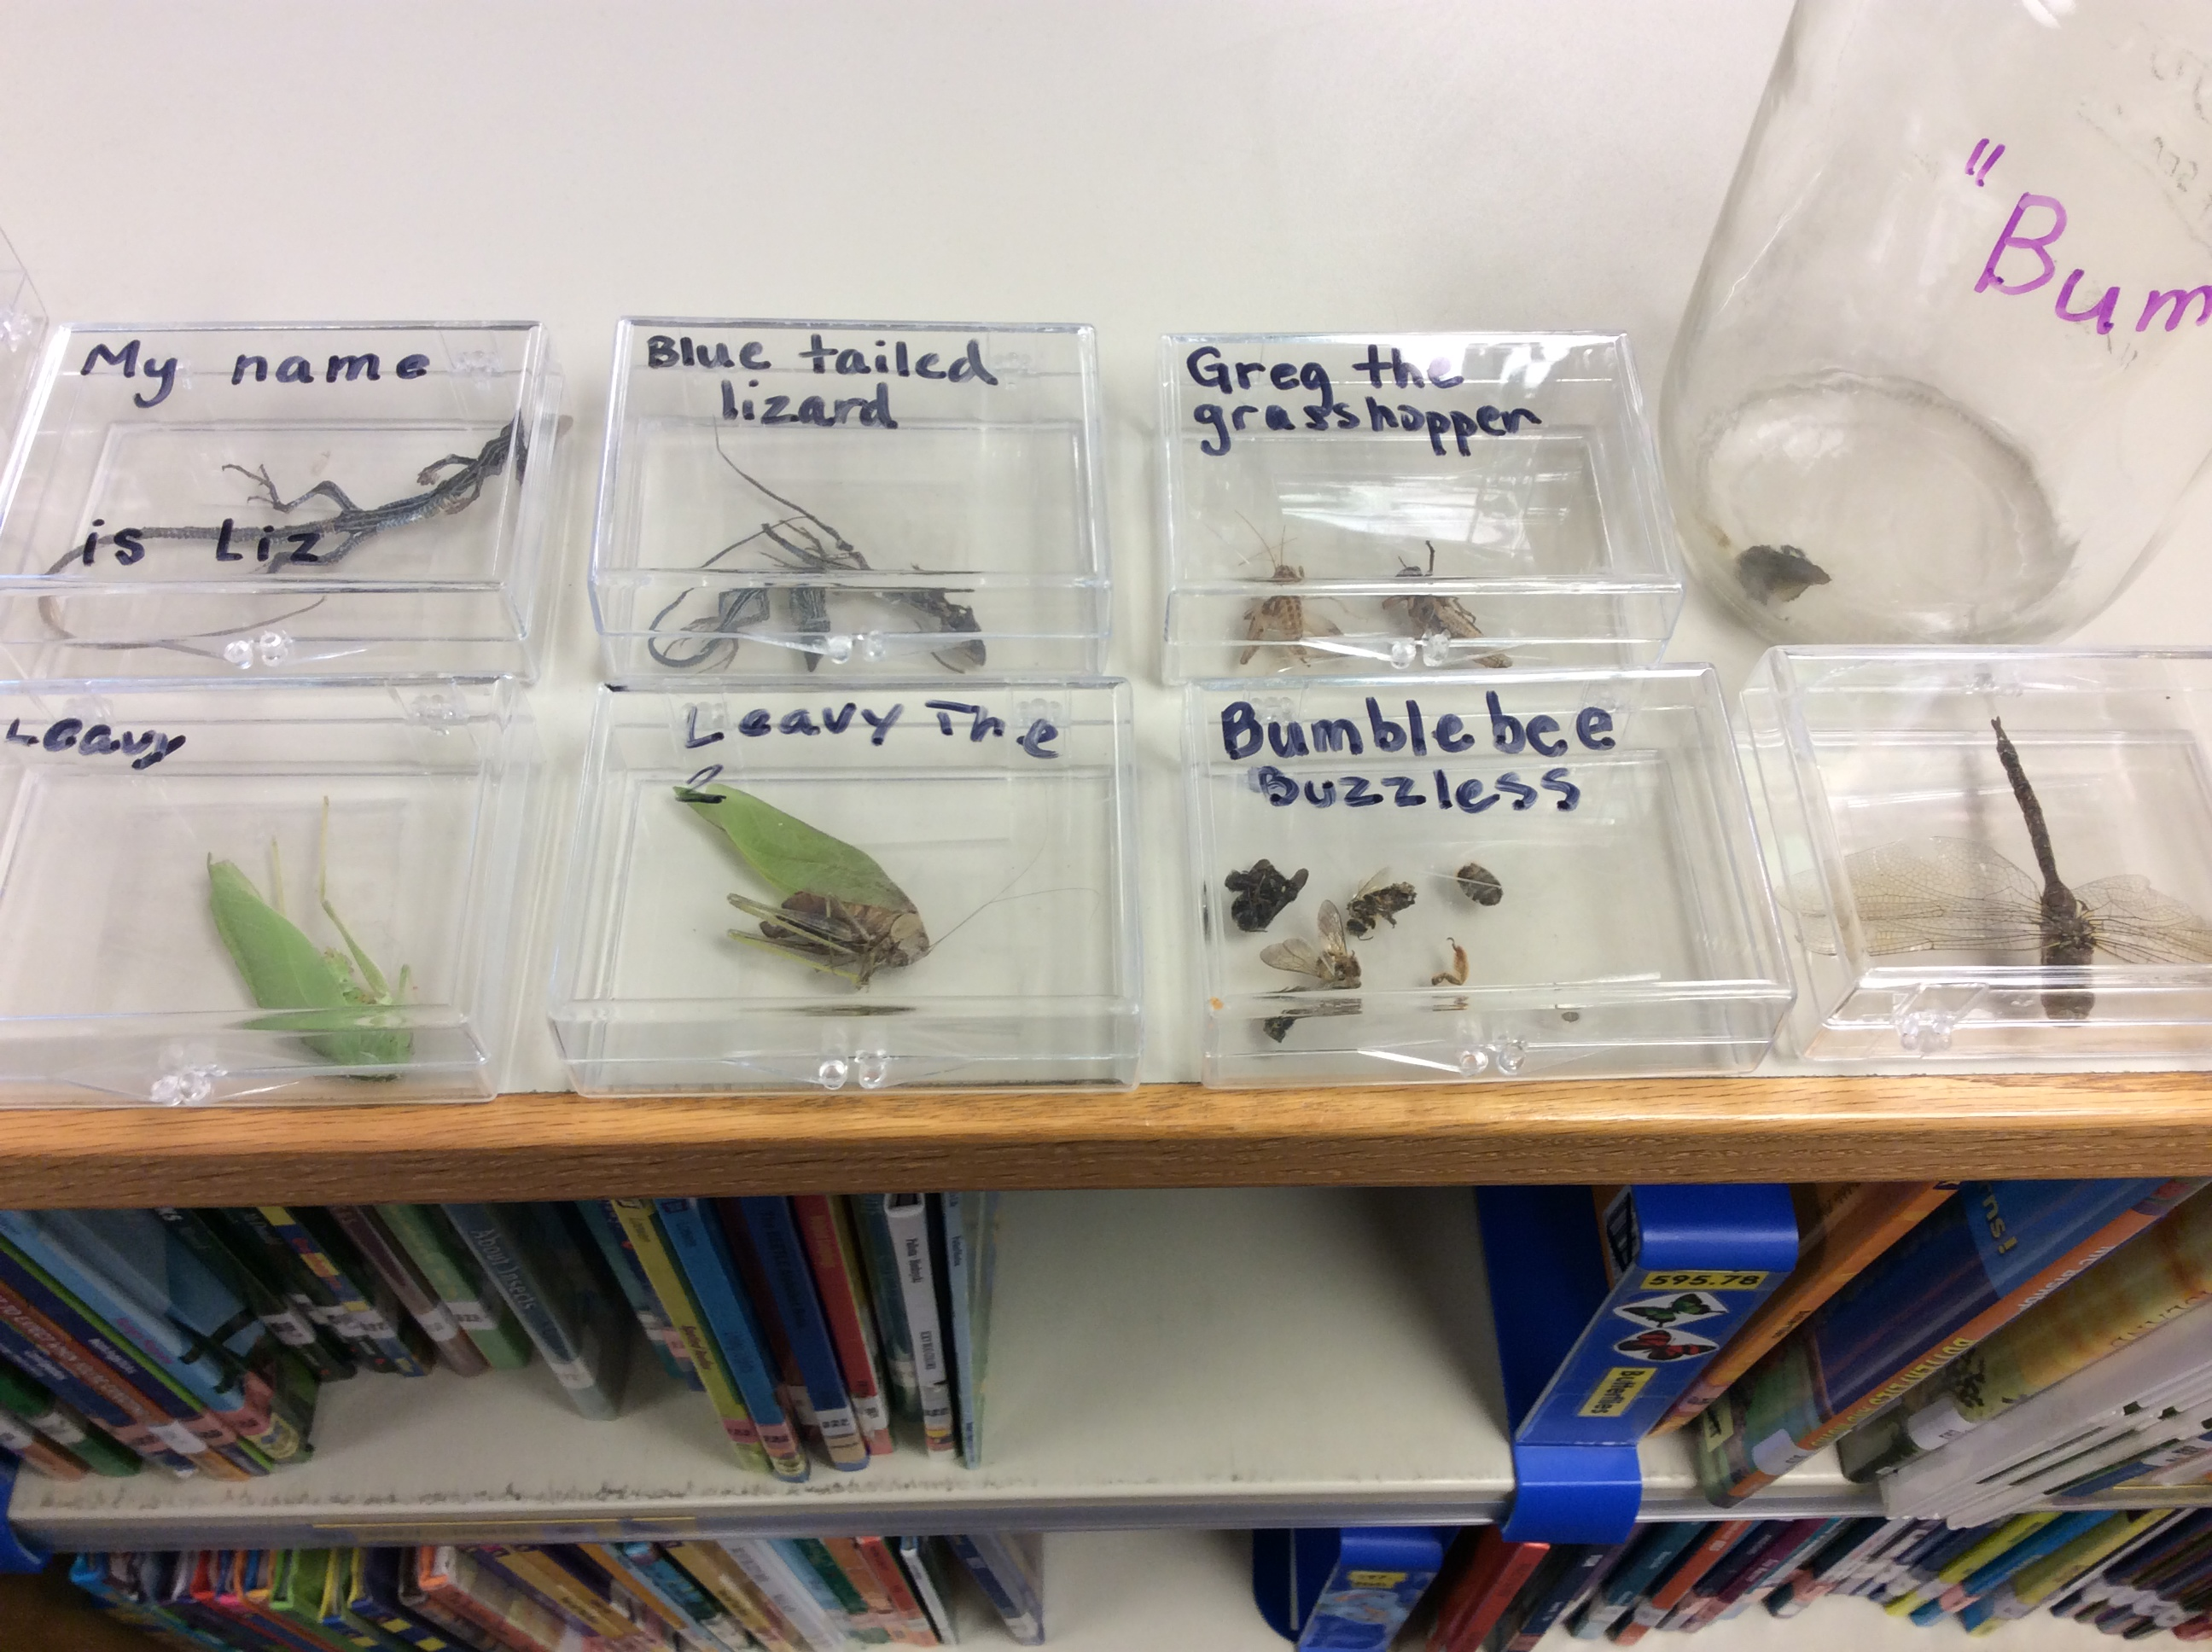 Come see our insect collection! They mark the non-fiction insect section for us!